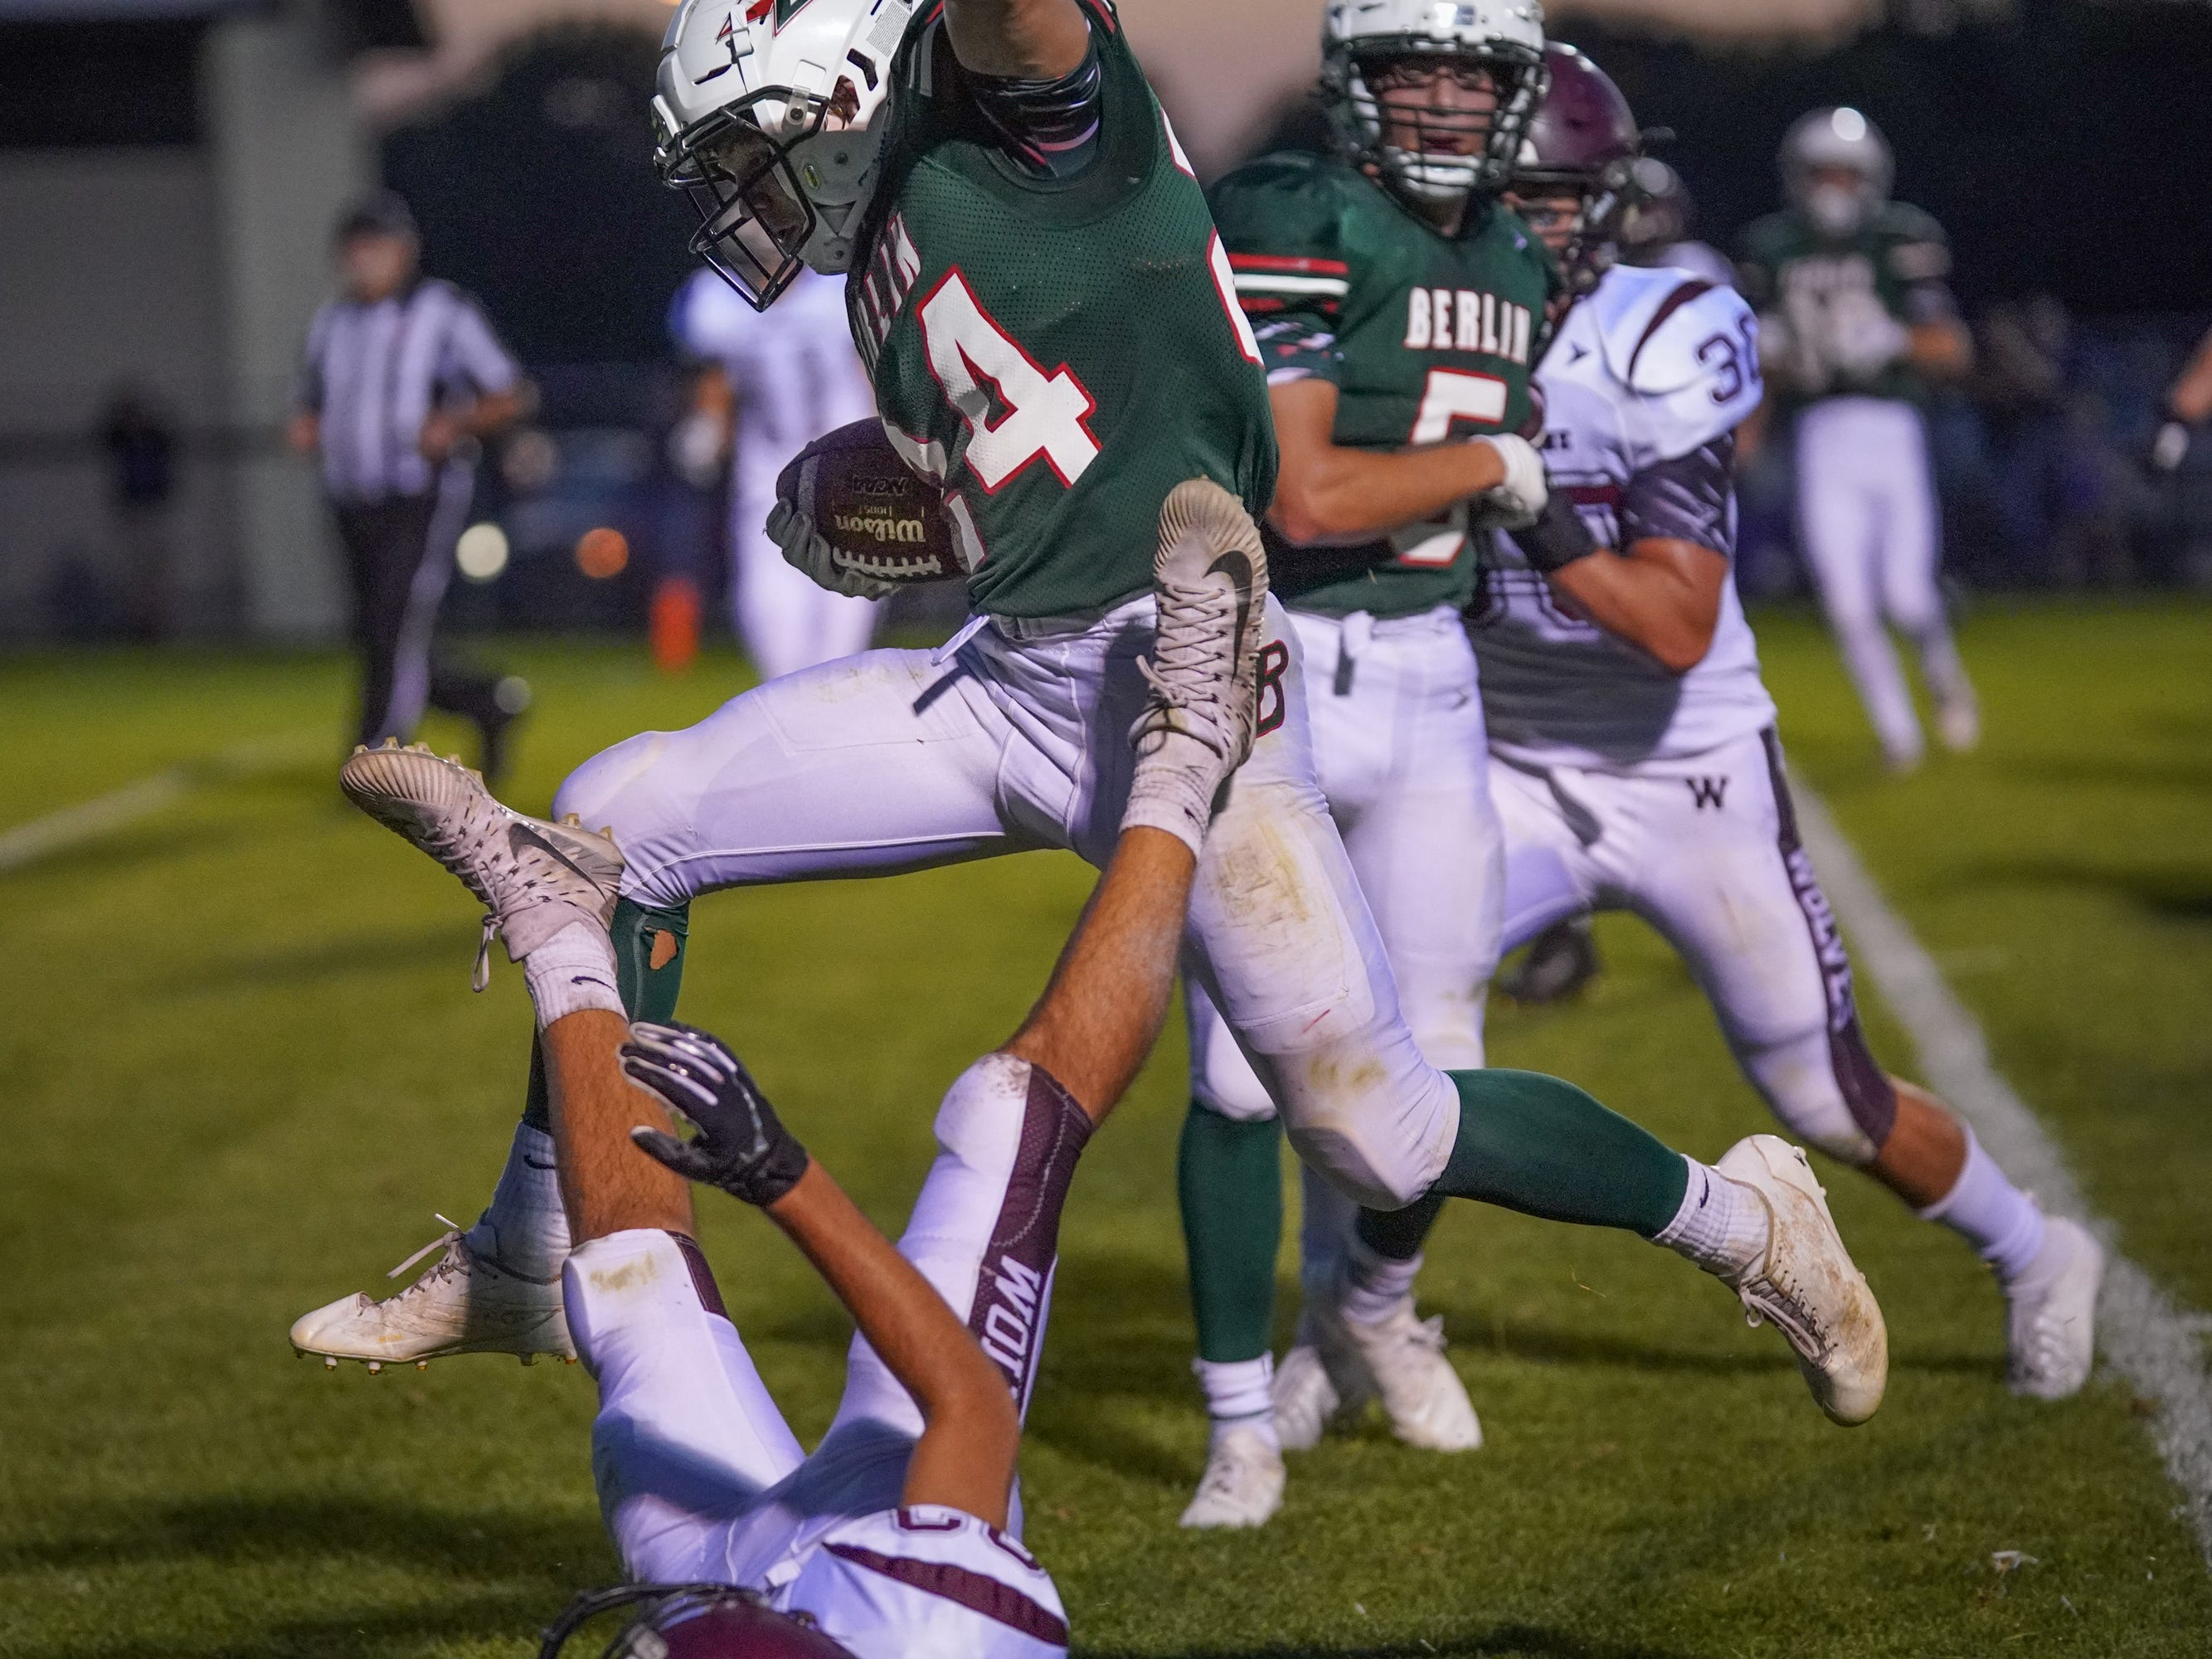 Aidan Schilling (24) of Berlin jumps over a Winneconne defender. The Berlin Indians hosted the Winneconne Wolves in an East Central Conference matchup Friday evening, September 14, 2018.